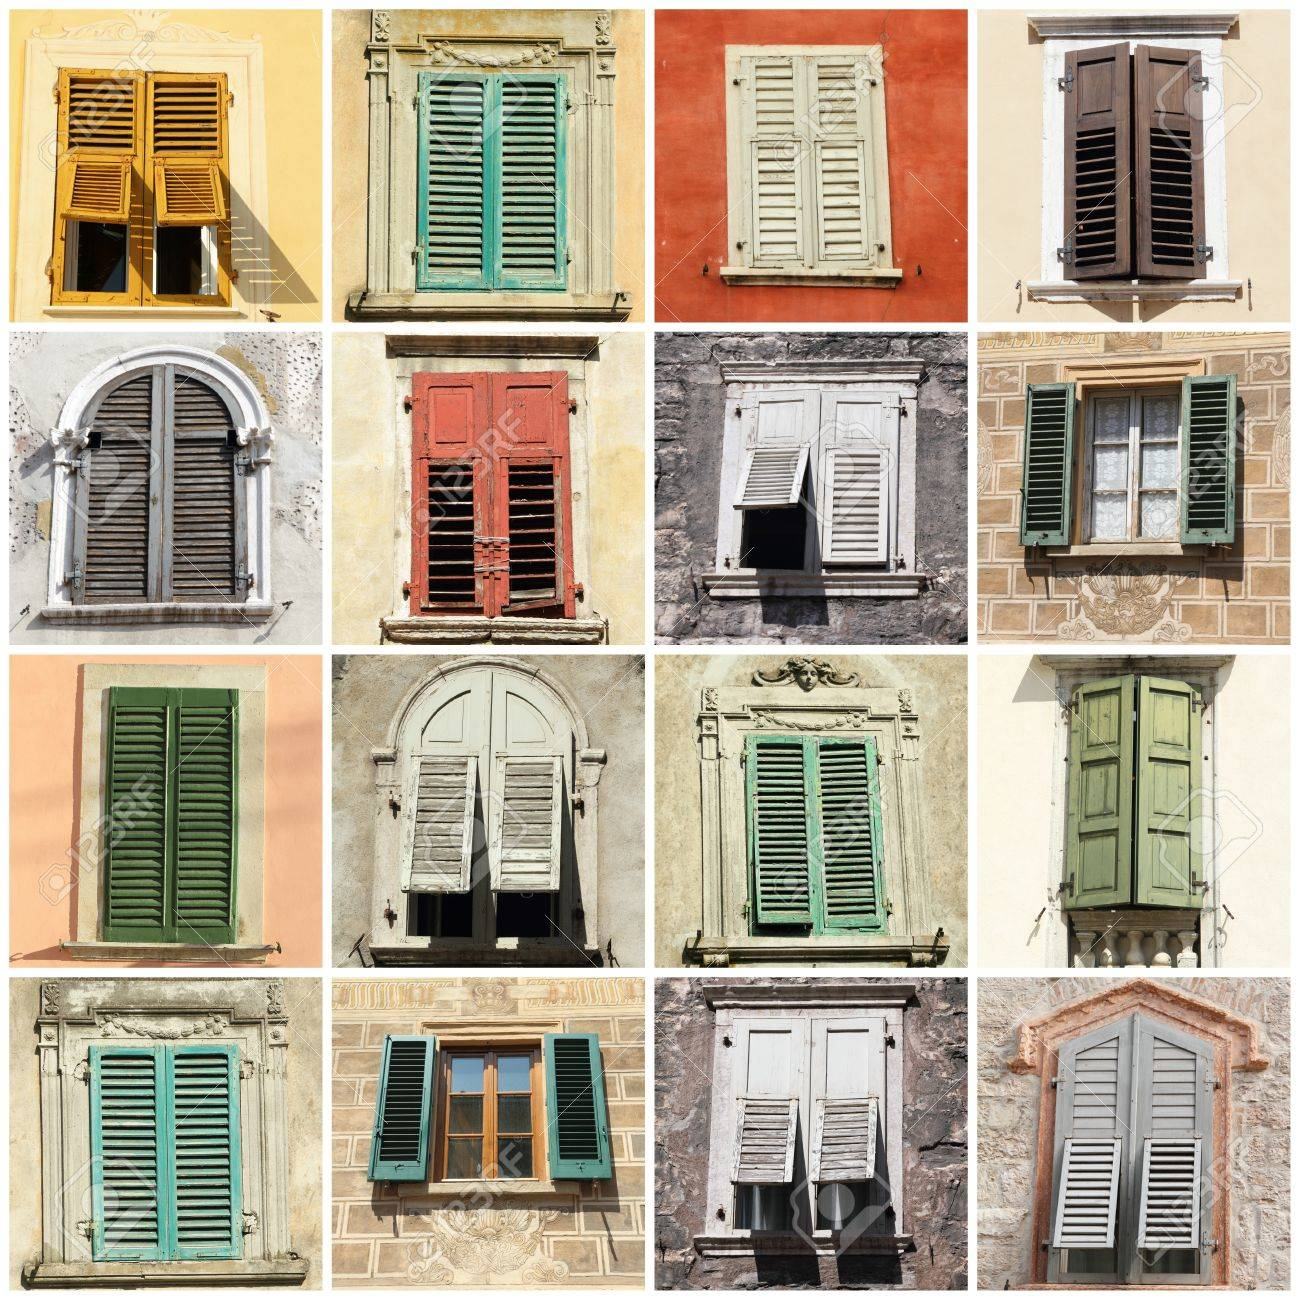 Collage With Antique Windows With Shutters In Italy Europe